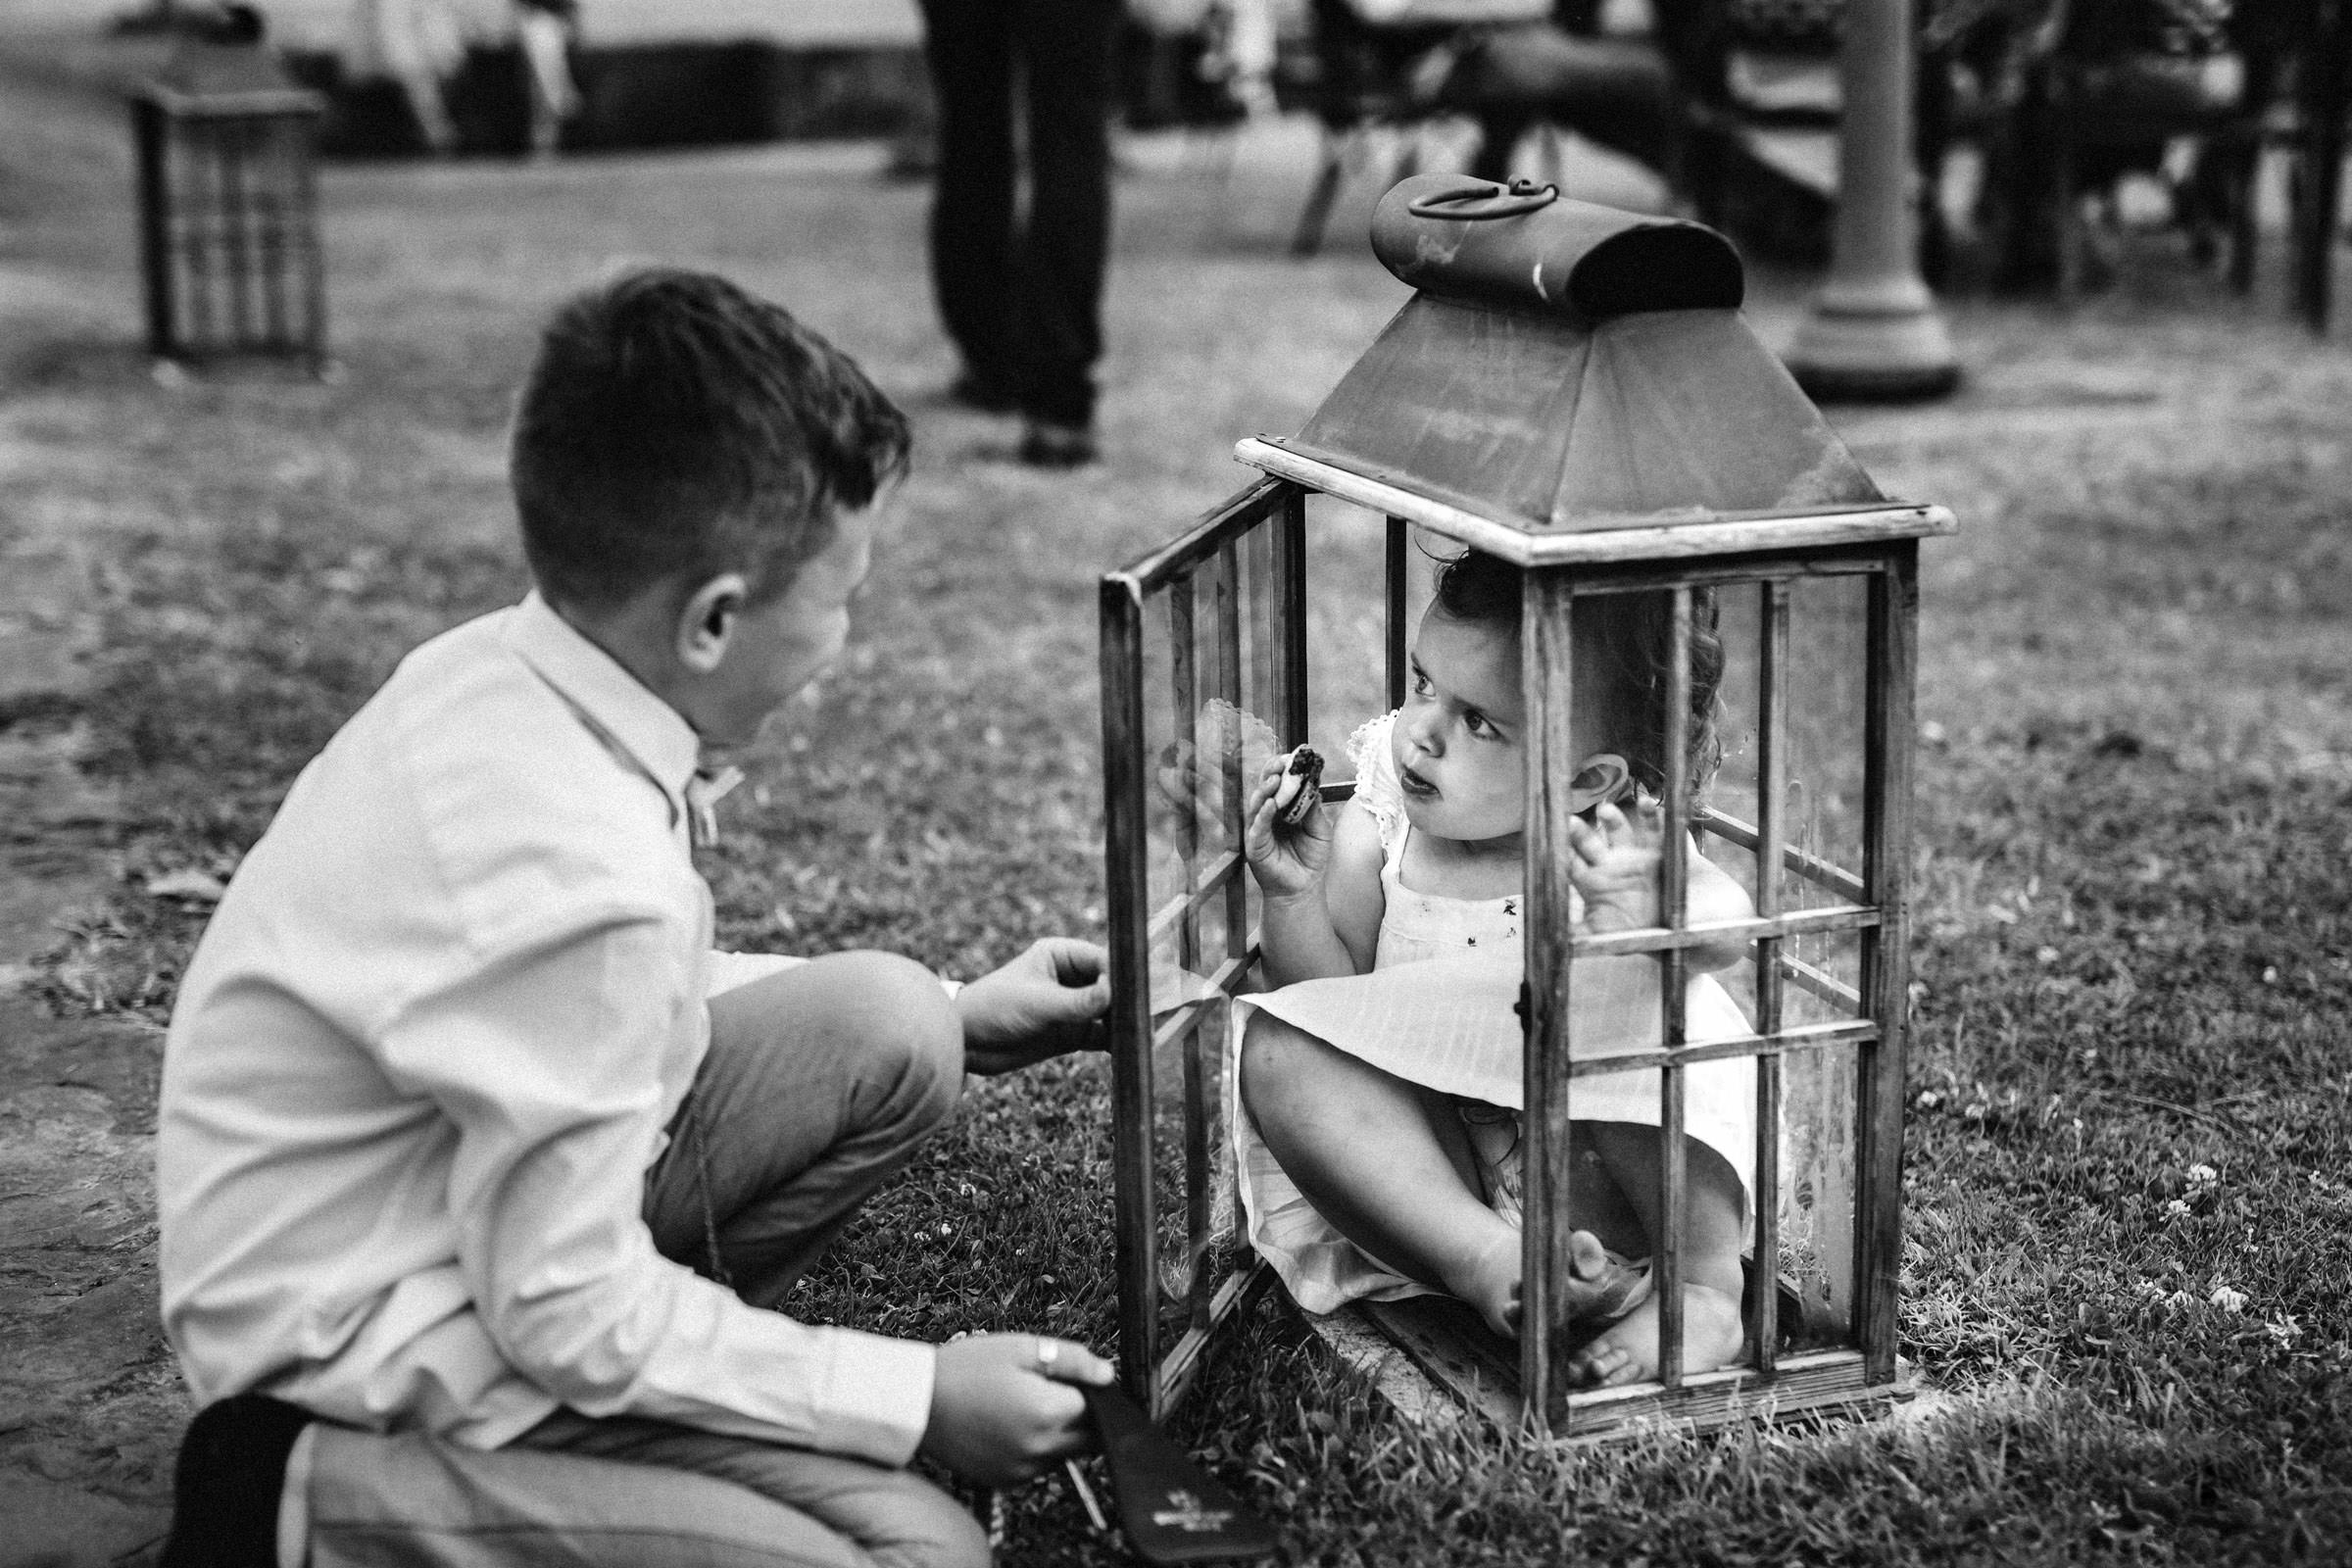 Brother attempts to lock little sister in small container - photo by Lima Conlon Photography